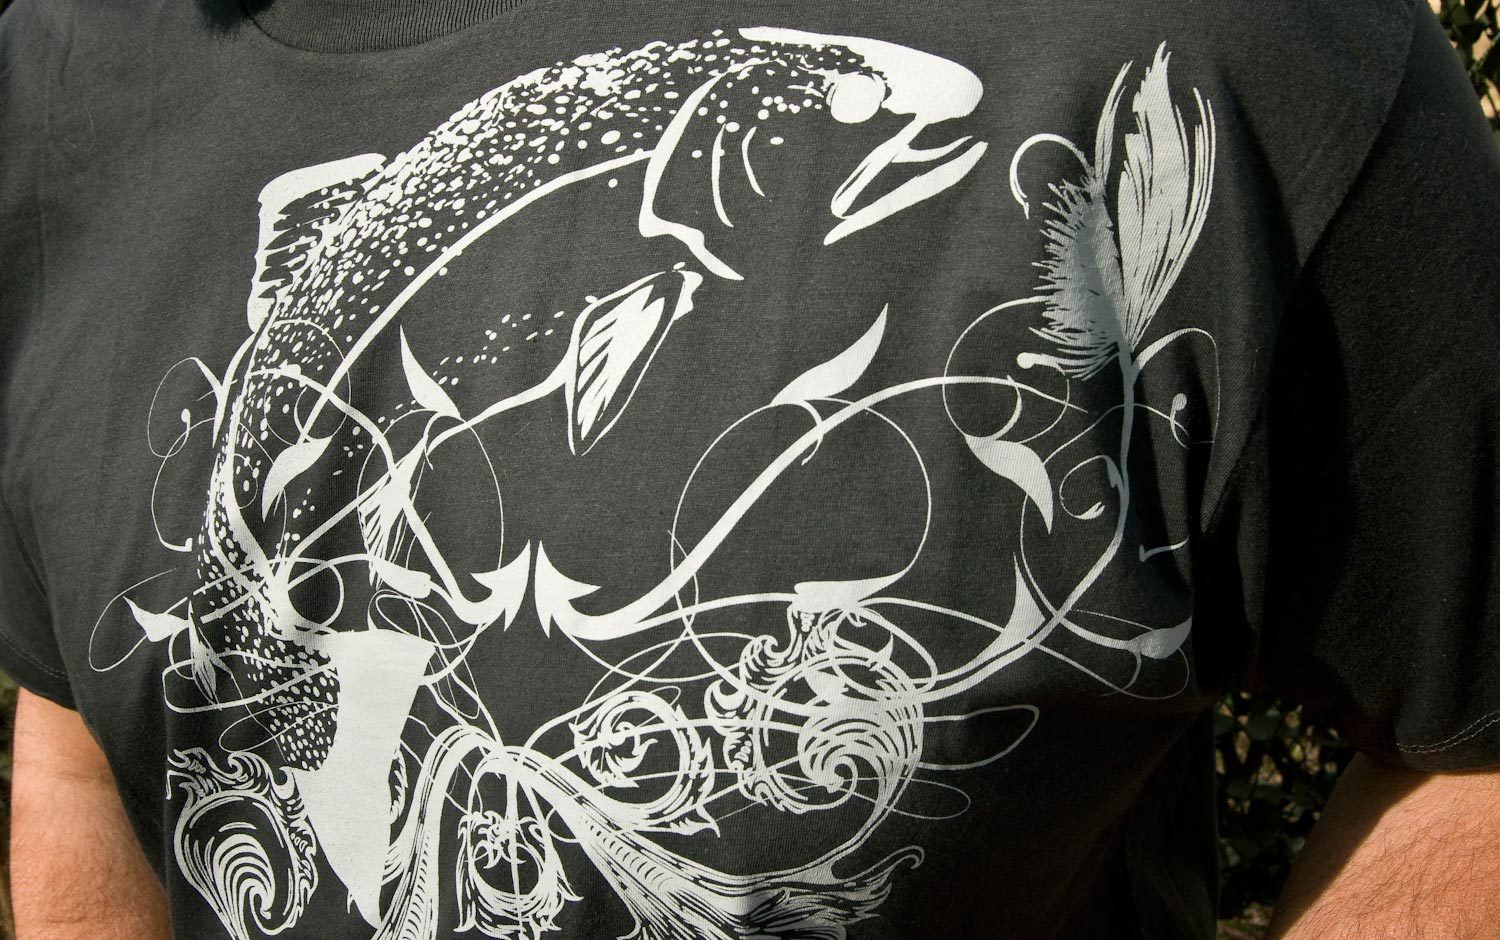 Soul River Runs Deep - Stylish T's. Photo: Louis Cahill